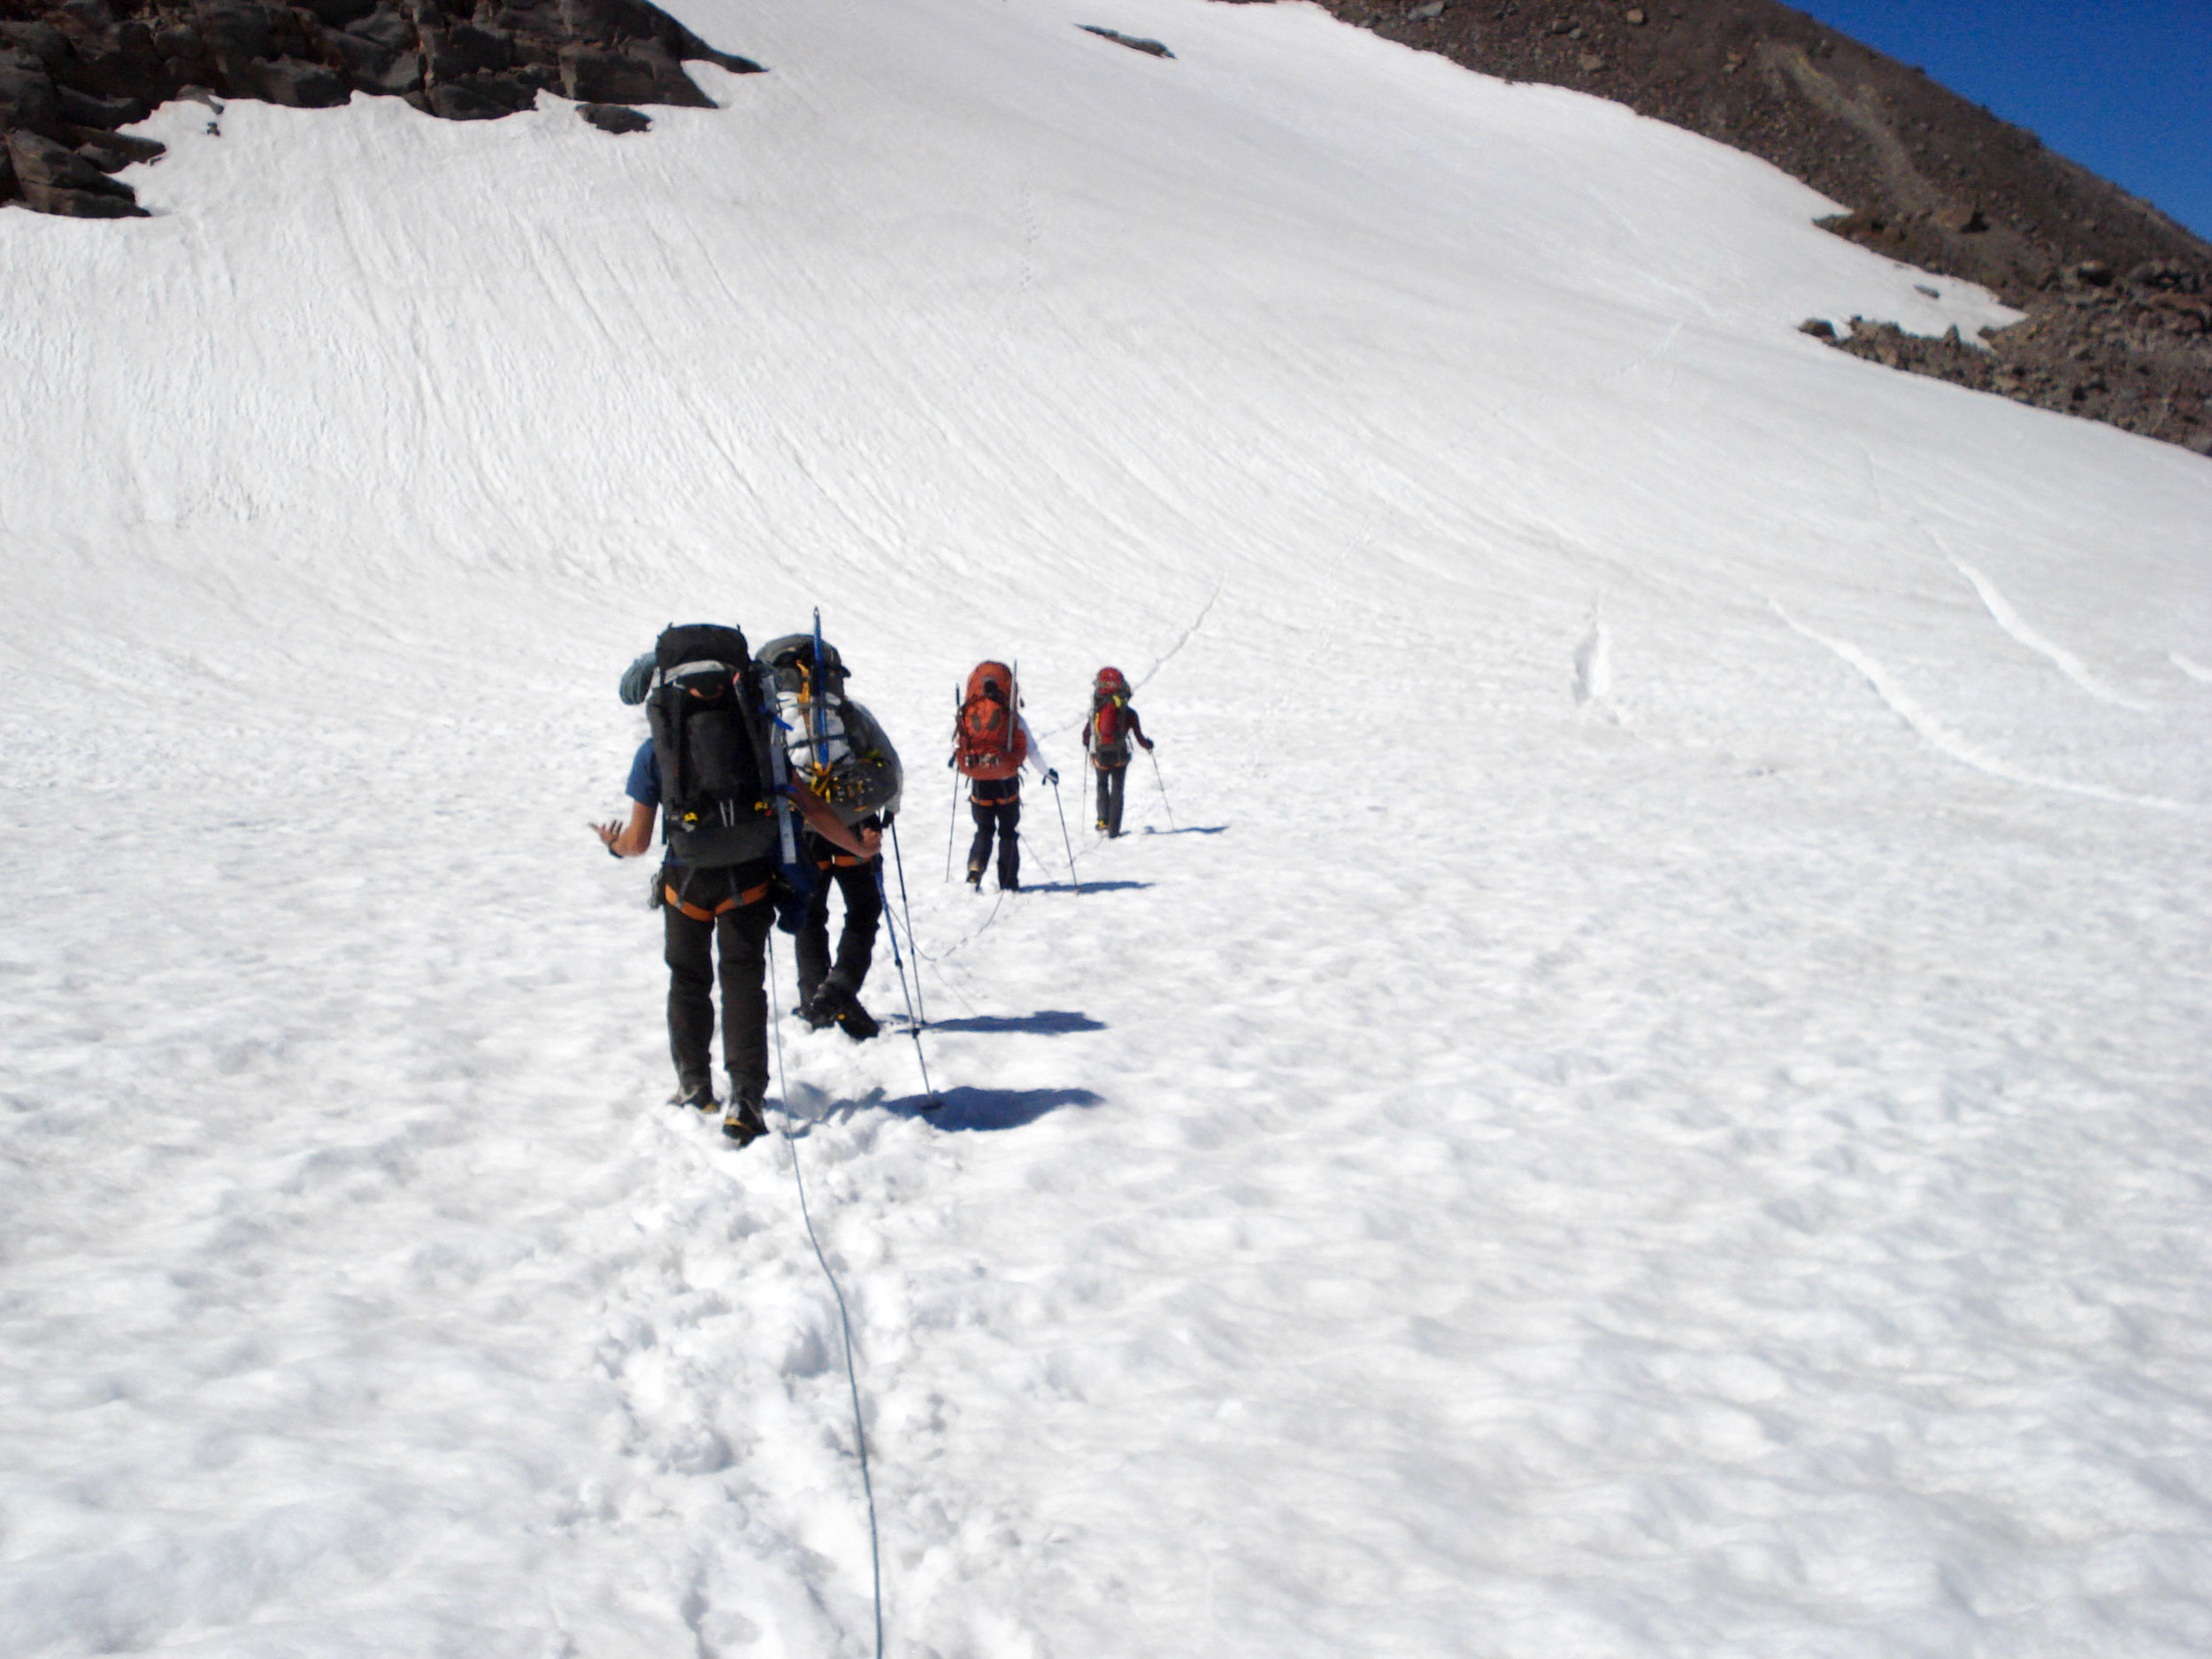 Crossing the glacier on the 1st day to get to camp